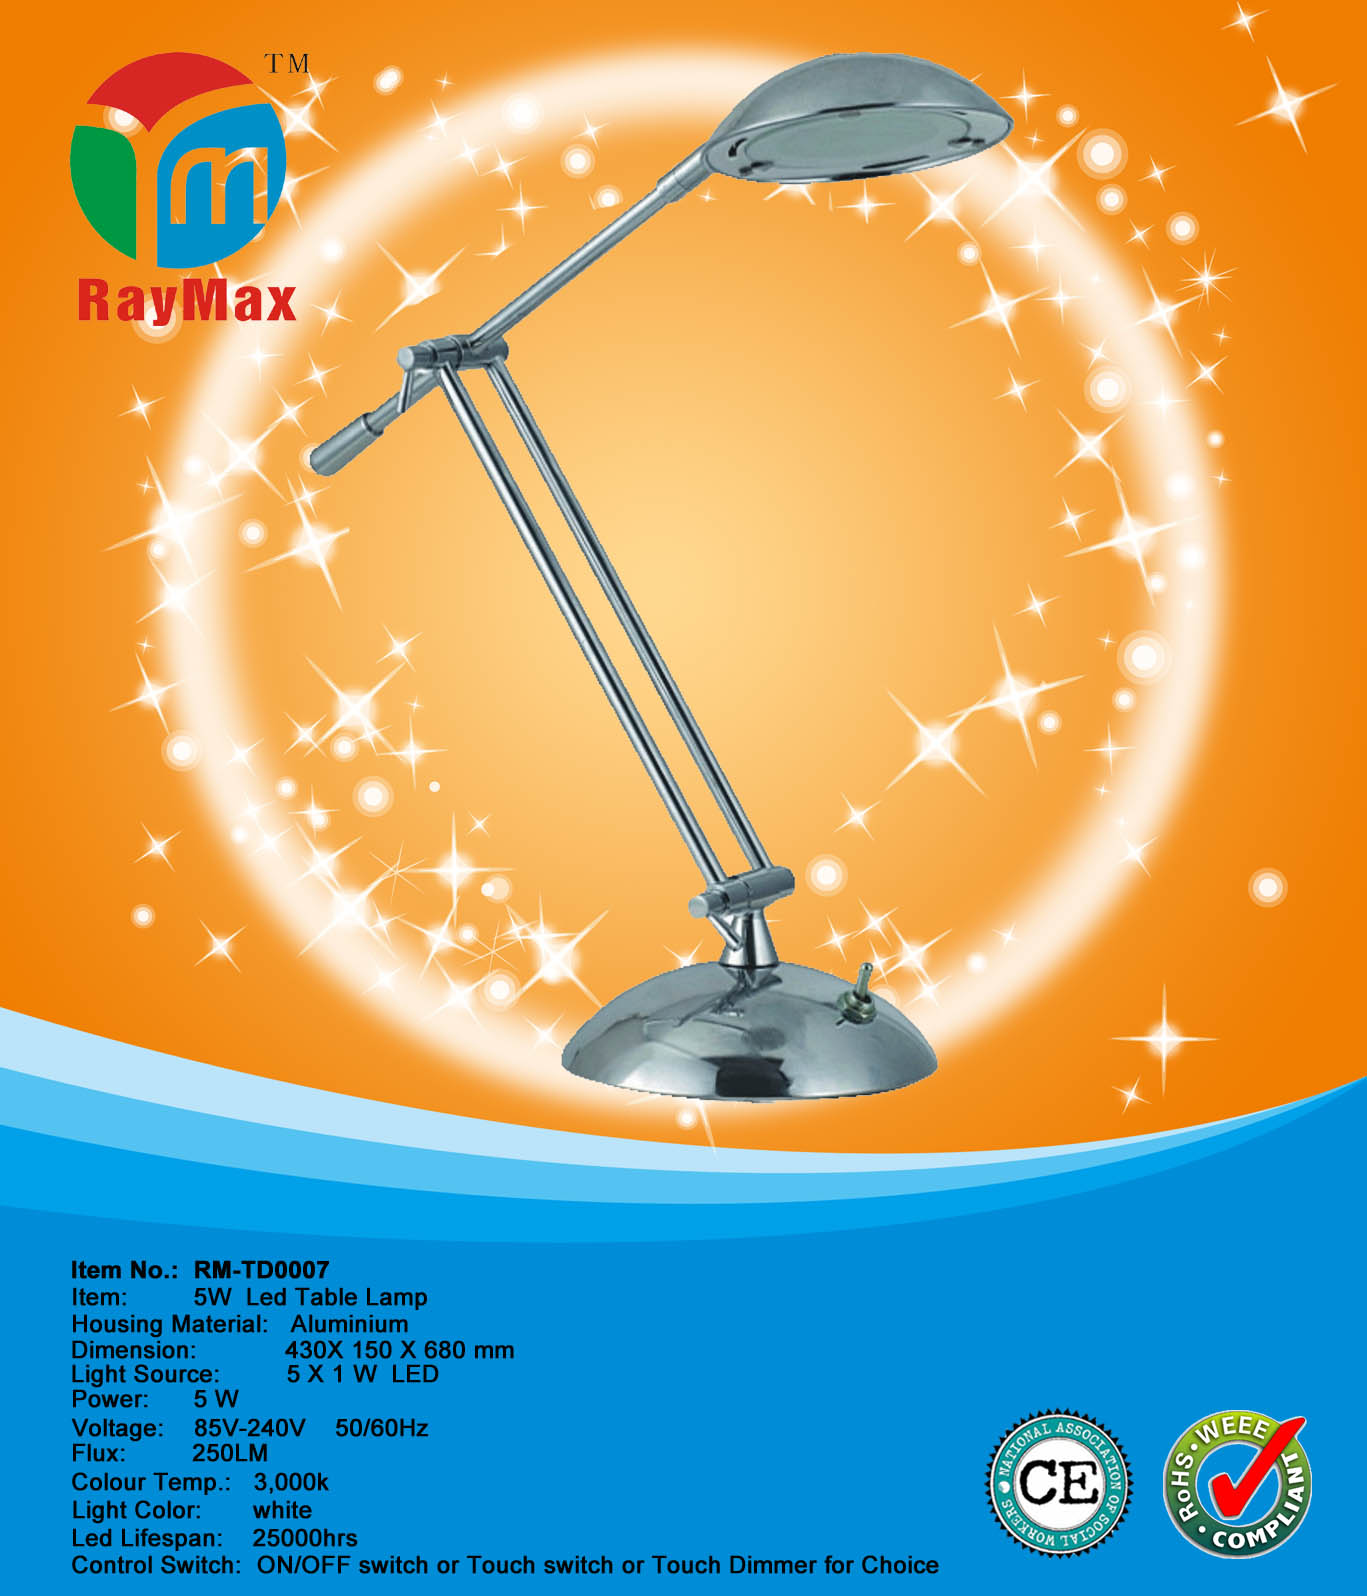 5W LED DESK LAMP LIGHT